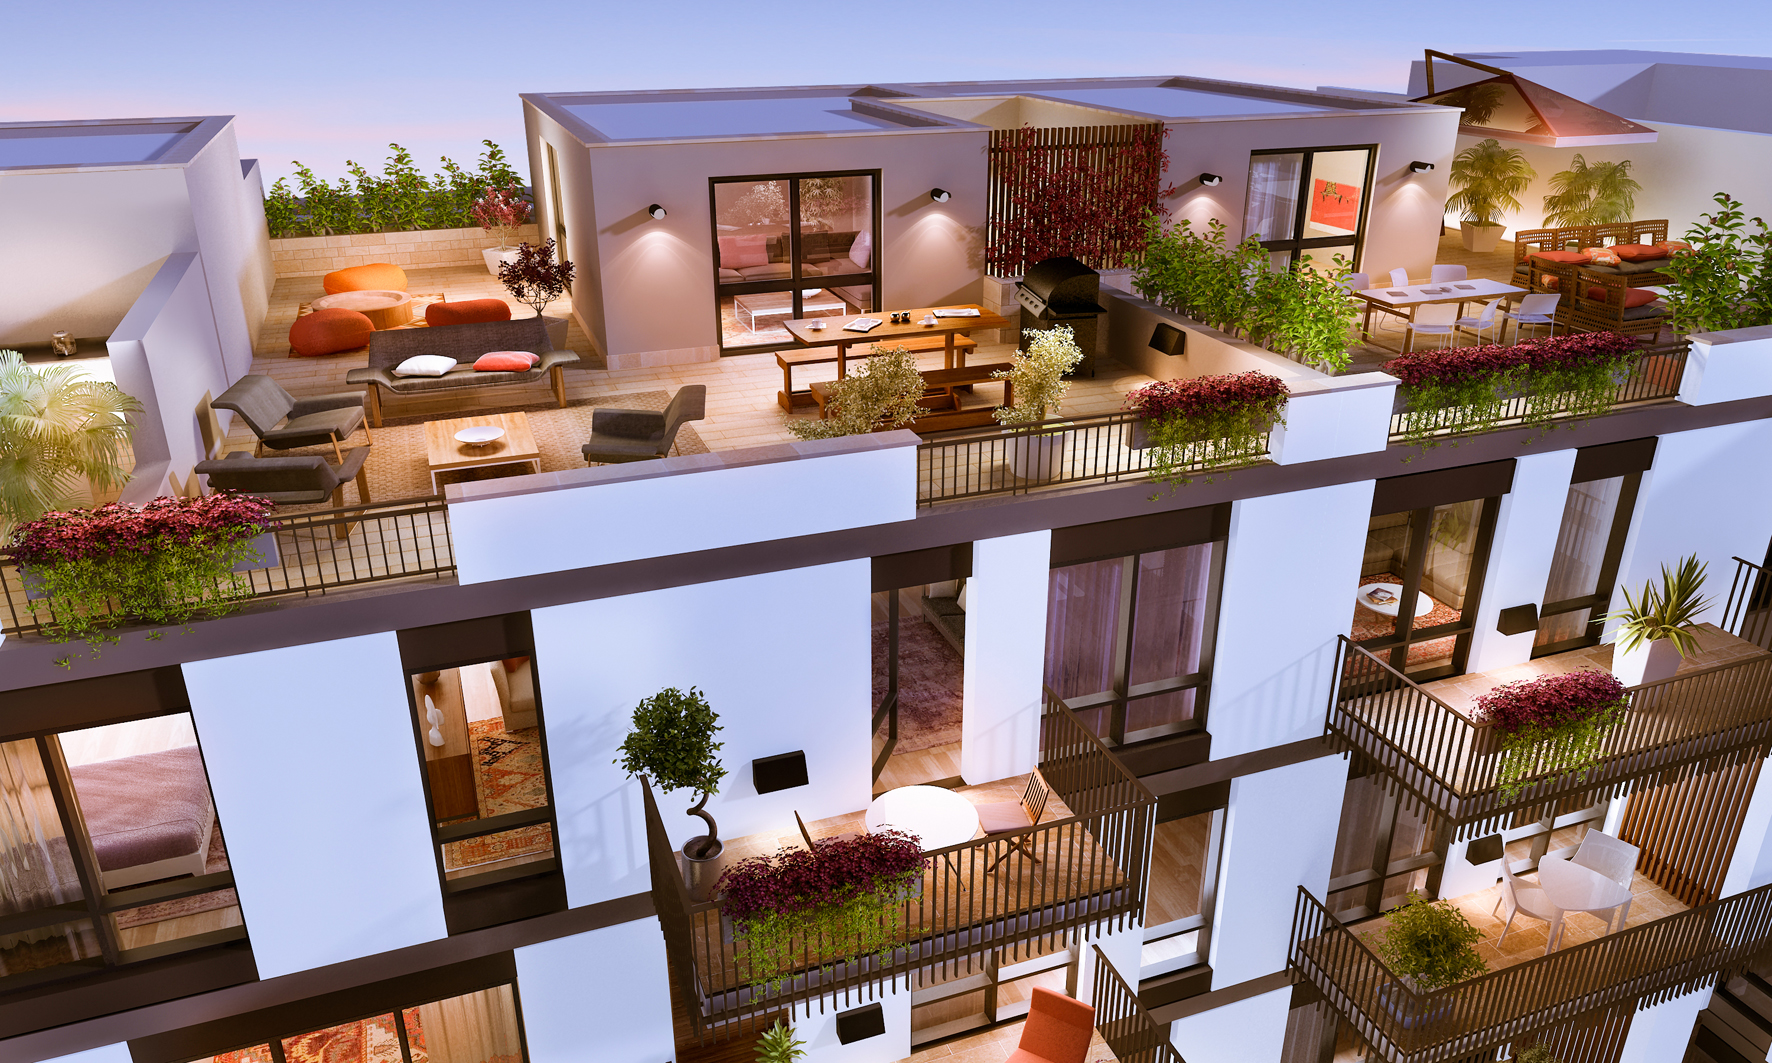 503-apartment-3-bedrooms-roof